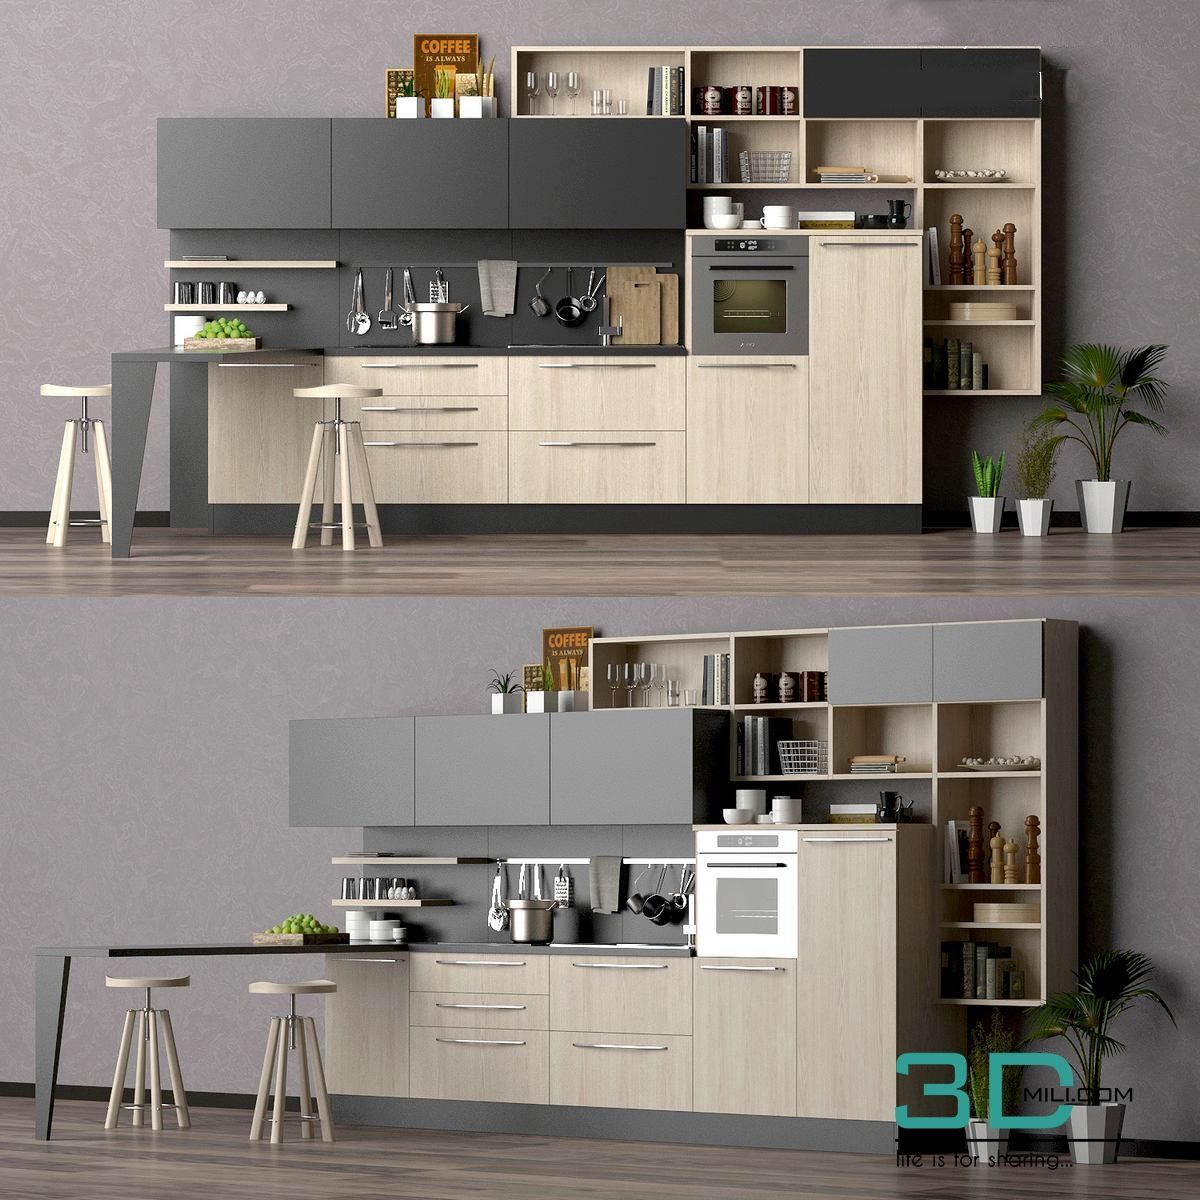 01 kitchen room 3d mili download 3d model free 3d models 3d rh pinterest com